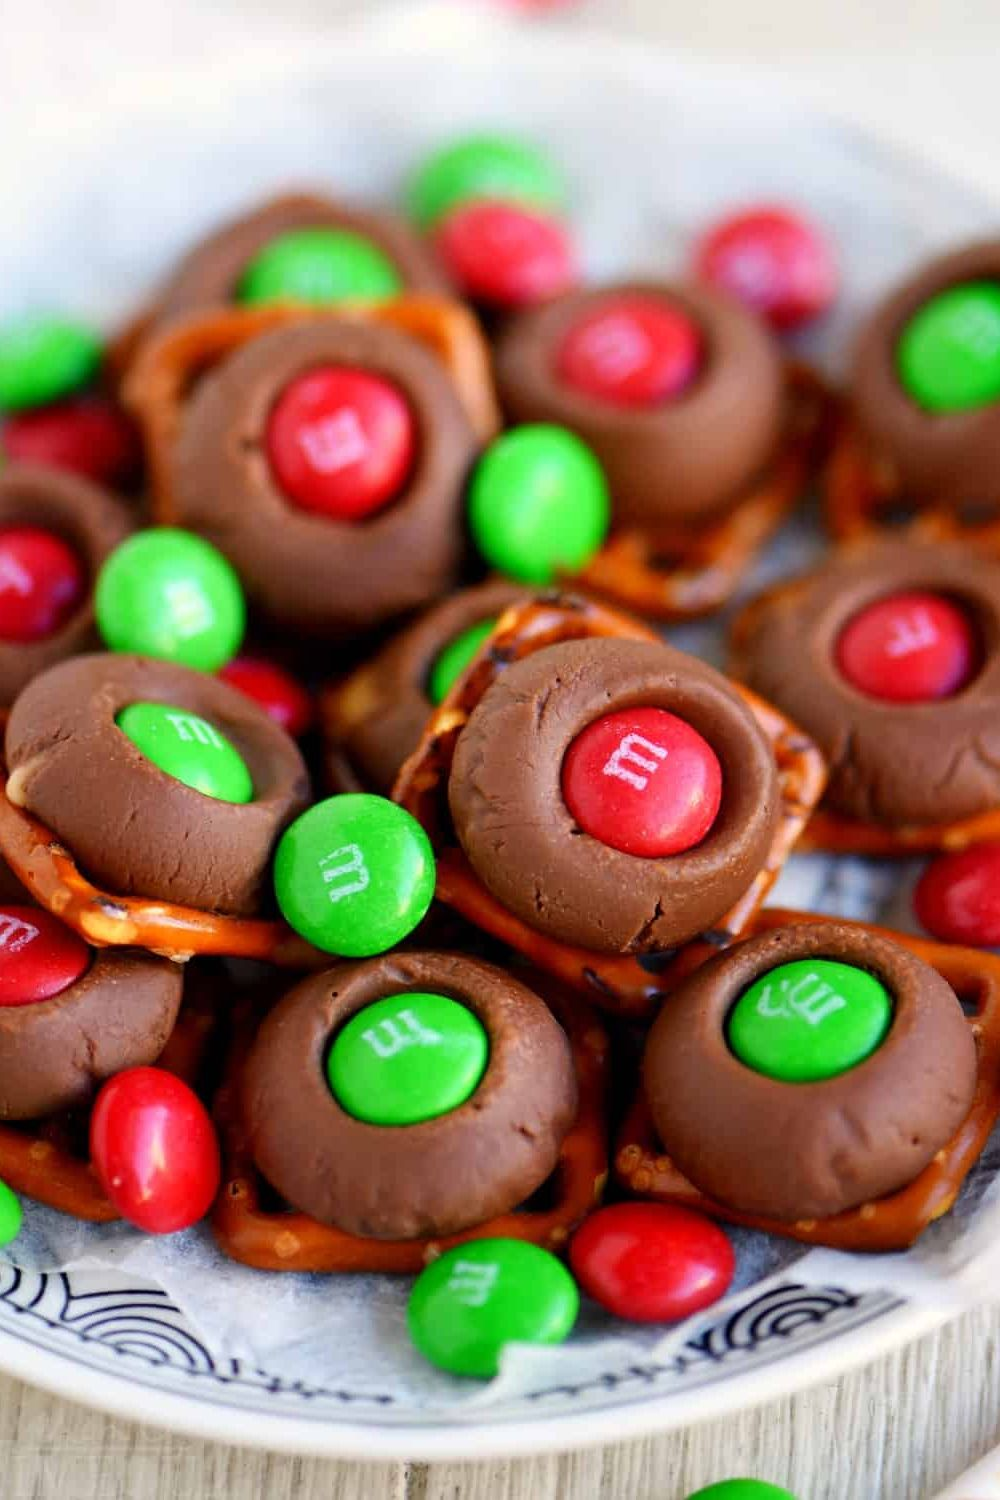 64 Easy Christmas Candy Recipes Ideas For Homemade Christmas Candy